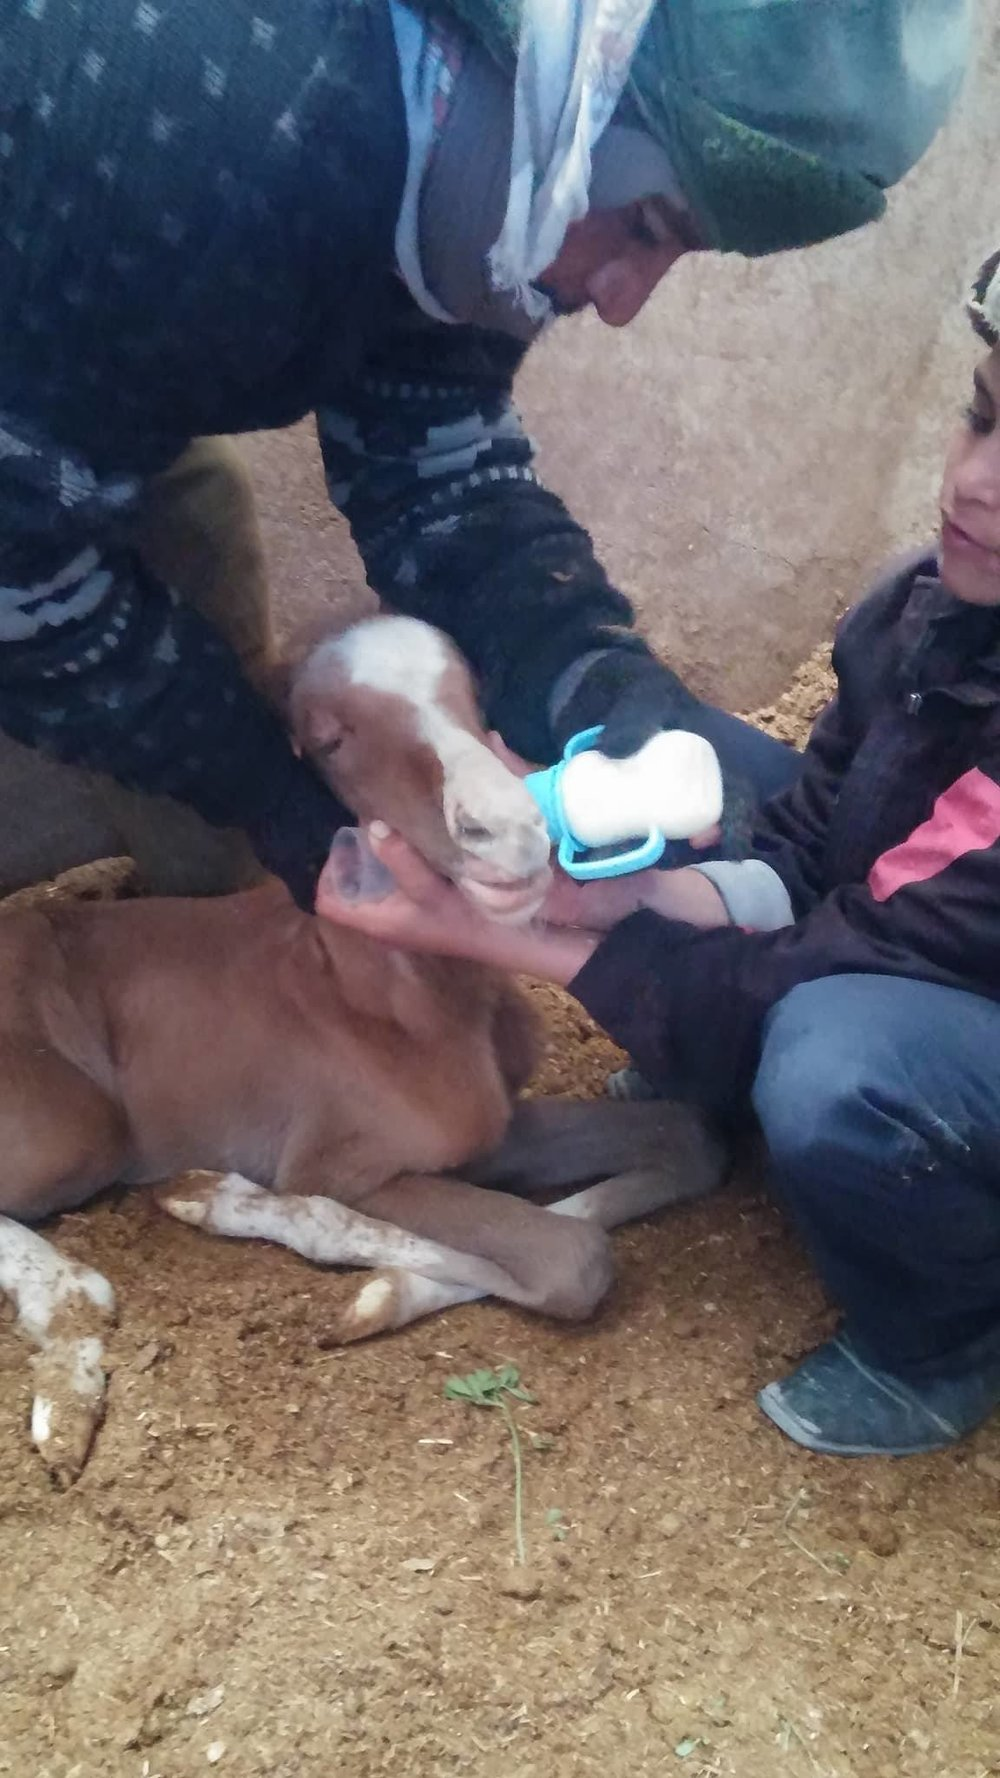 Dhamar feeding foal with difficulty OWAPAR 21 dec 2017 Yemen Rescue.jpg